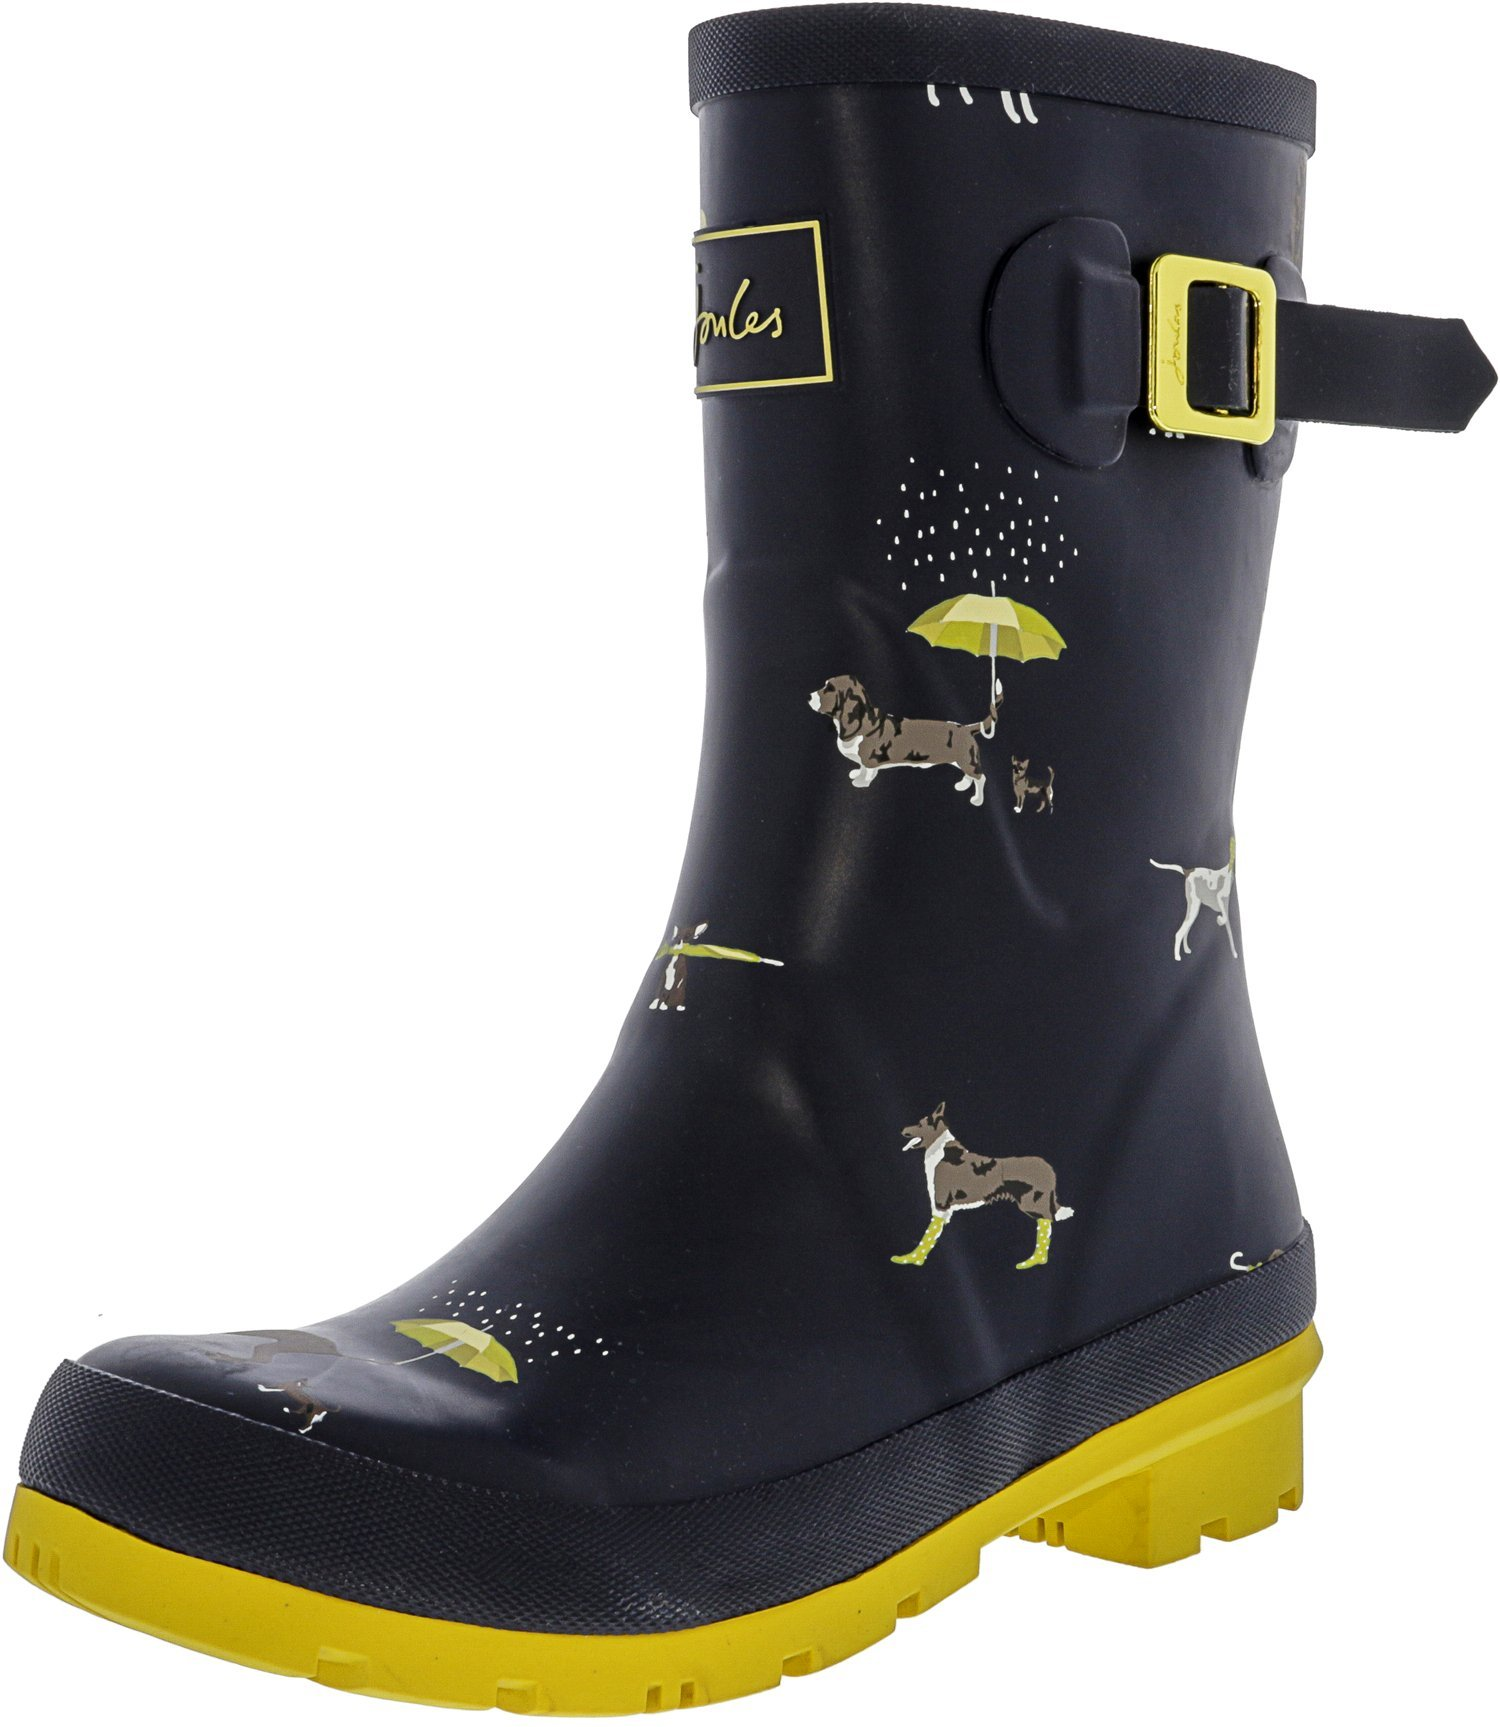 Joules Women's Mollywelly Rain Boot, Navy Raining Dogs, 8 Medium US